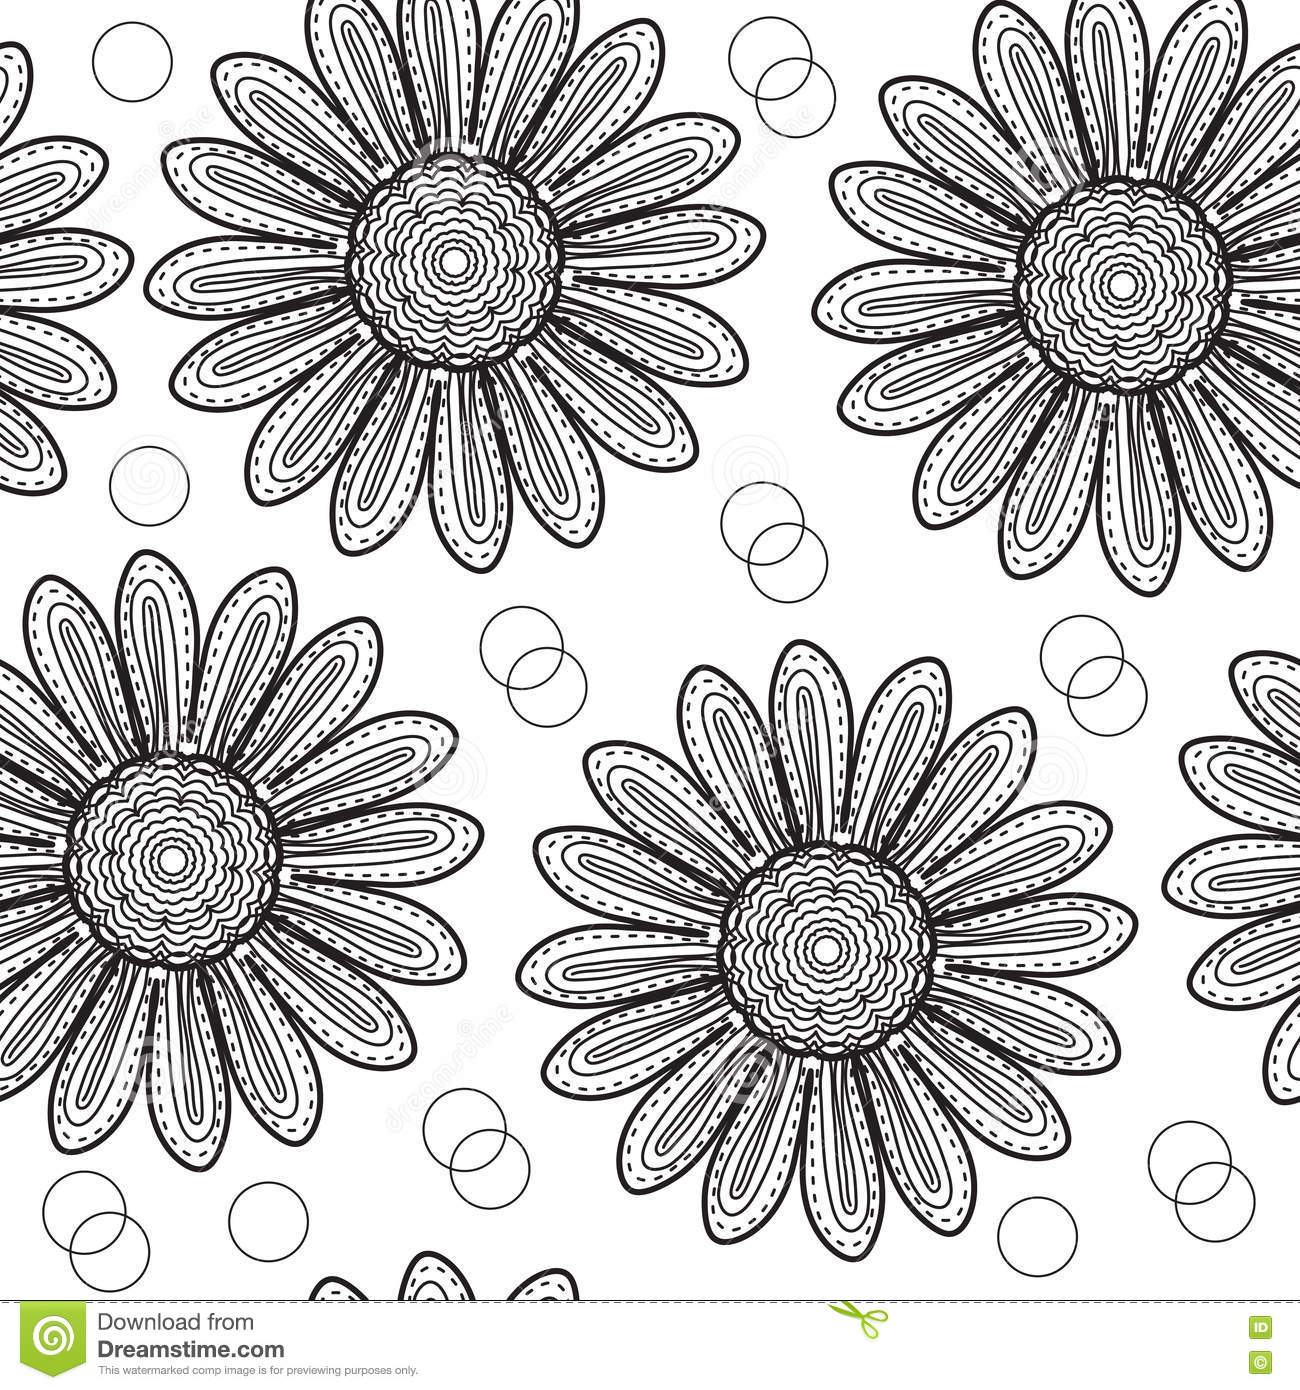 Pink floral seamless vector background floral hrysanthemum seamless - Floral Seamless Pattern Chrysanthemum In The Style Of Hand Drawing Black And White Flowers